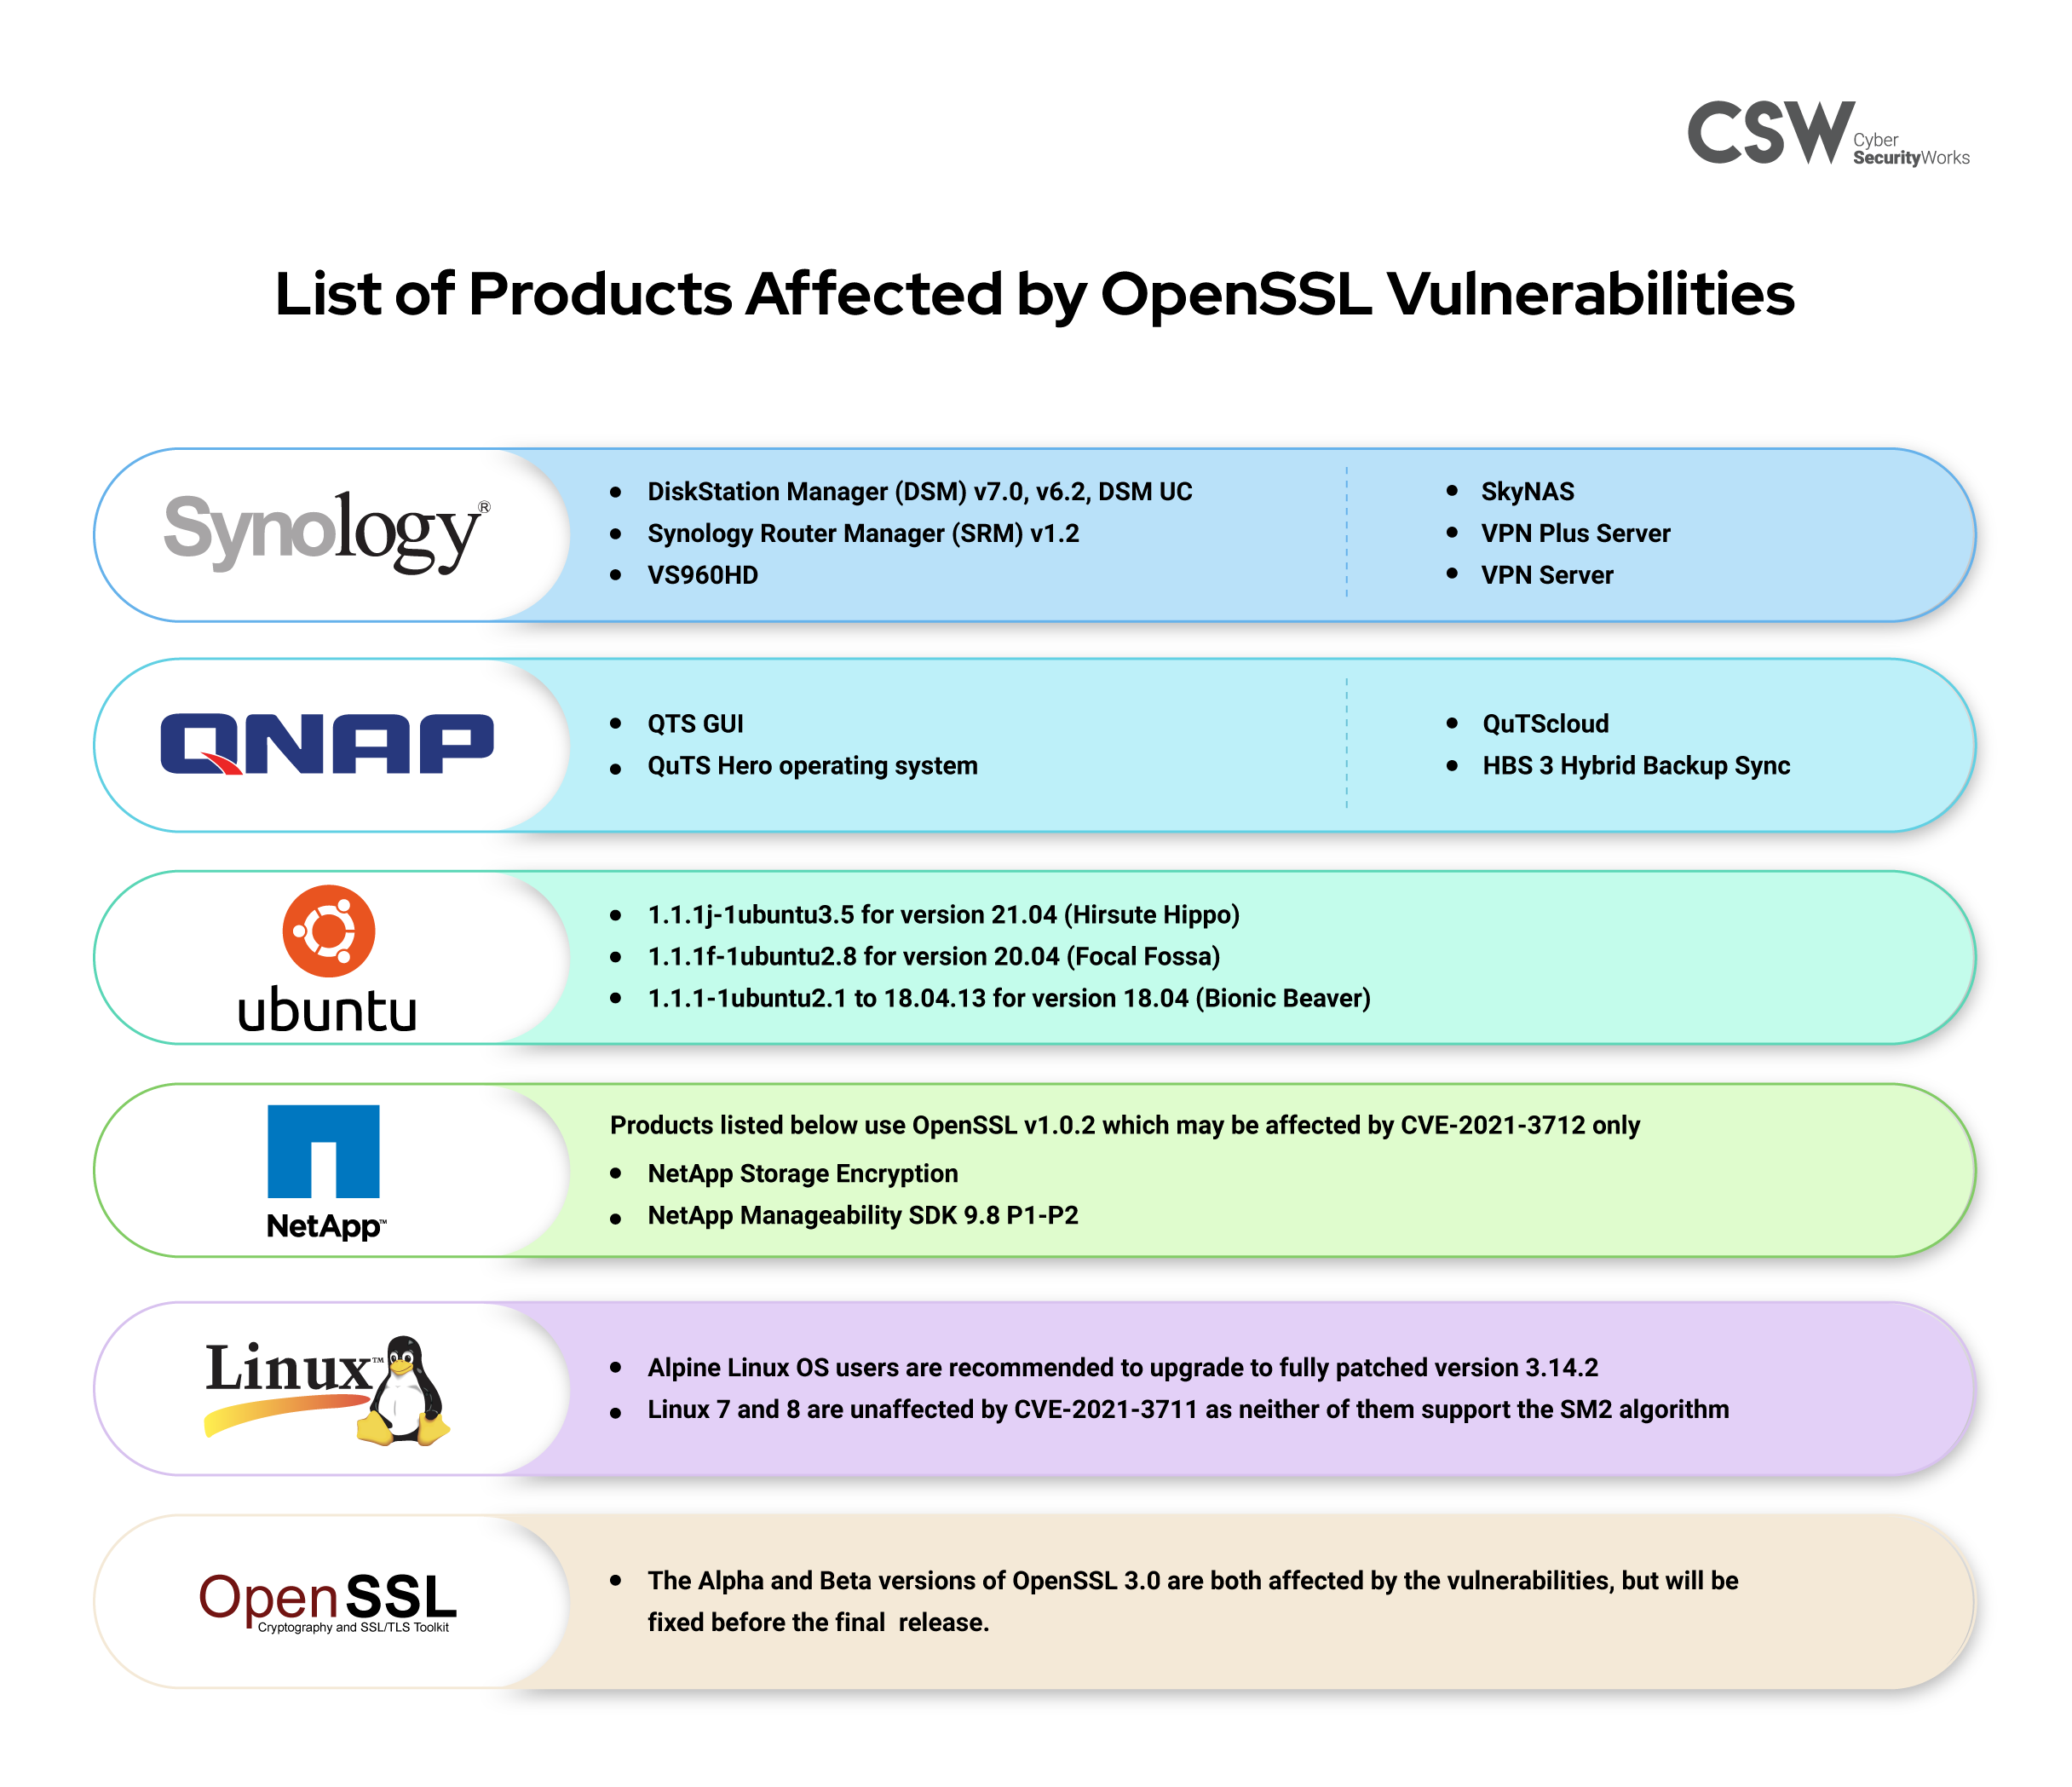 Products and Vendors affected by OpenSSL vulnerabilities